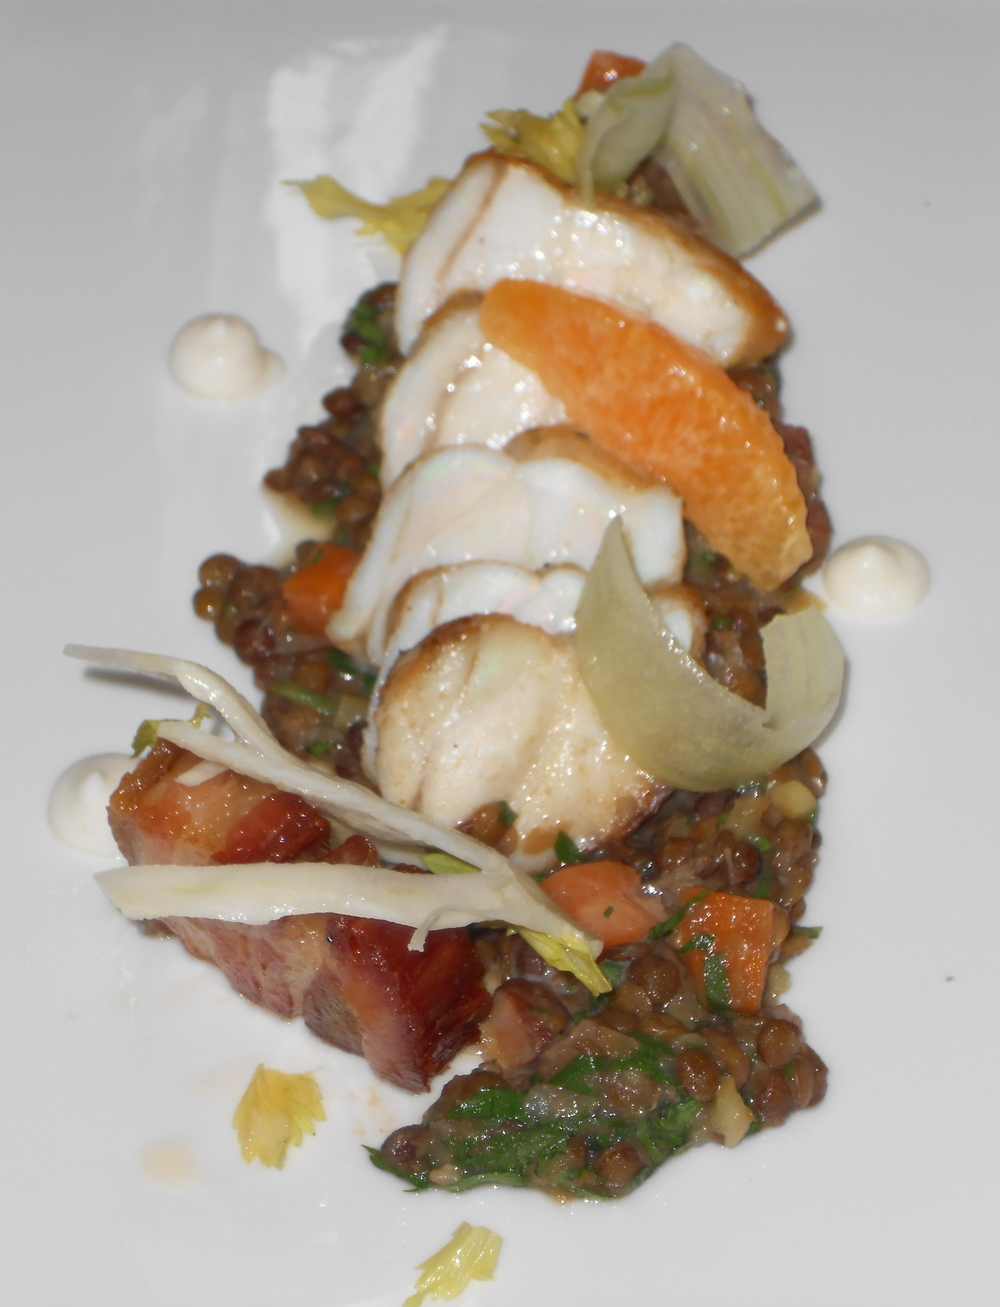 Monkfish loin with lentils du puy, pork belly, sunchoke, petite carrot, cara cara orange, and celery salad